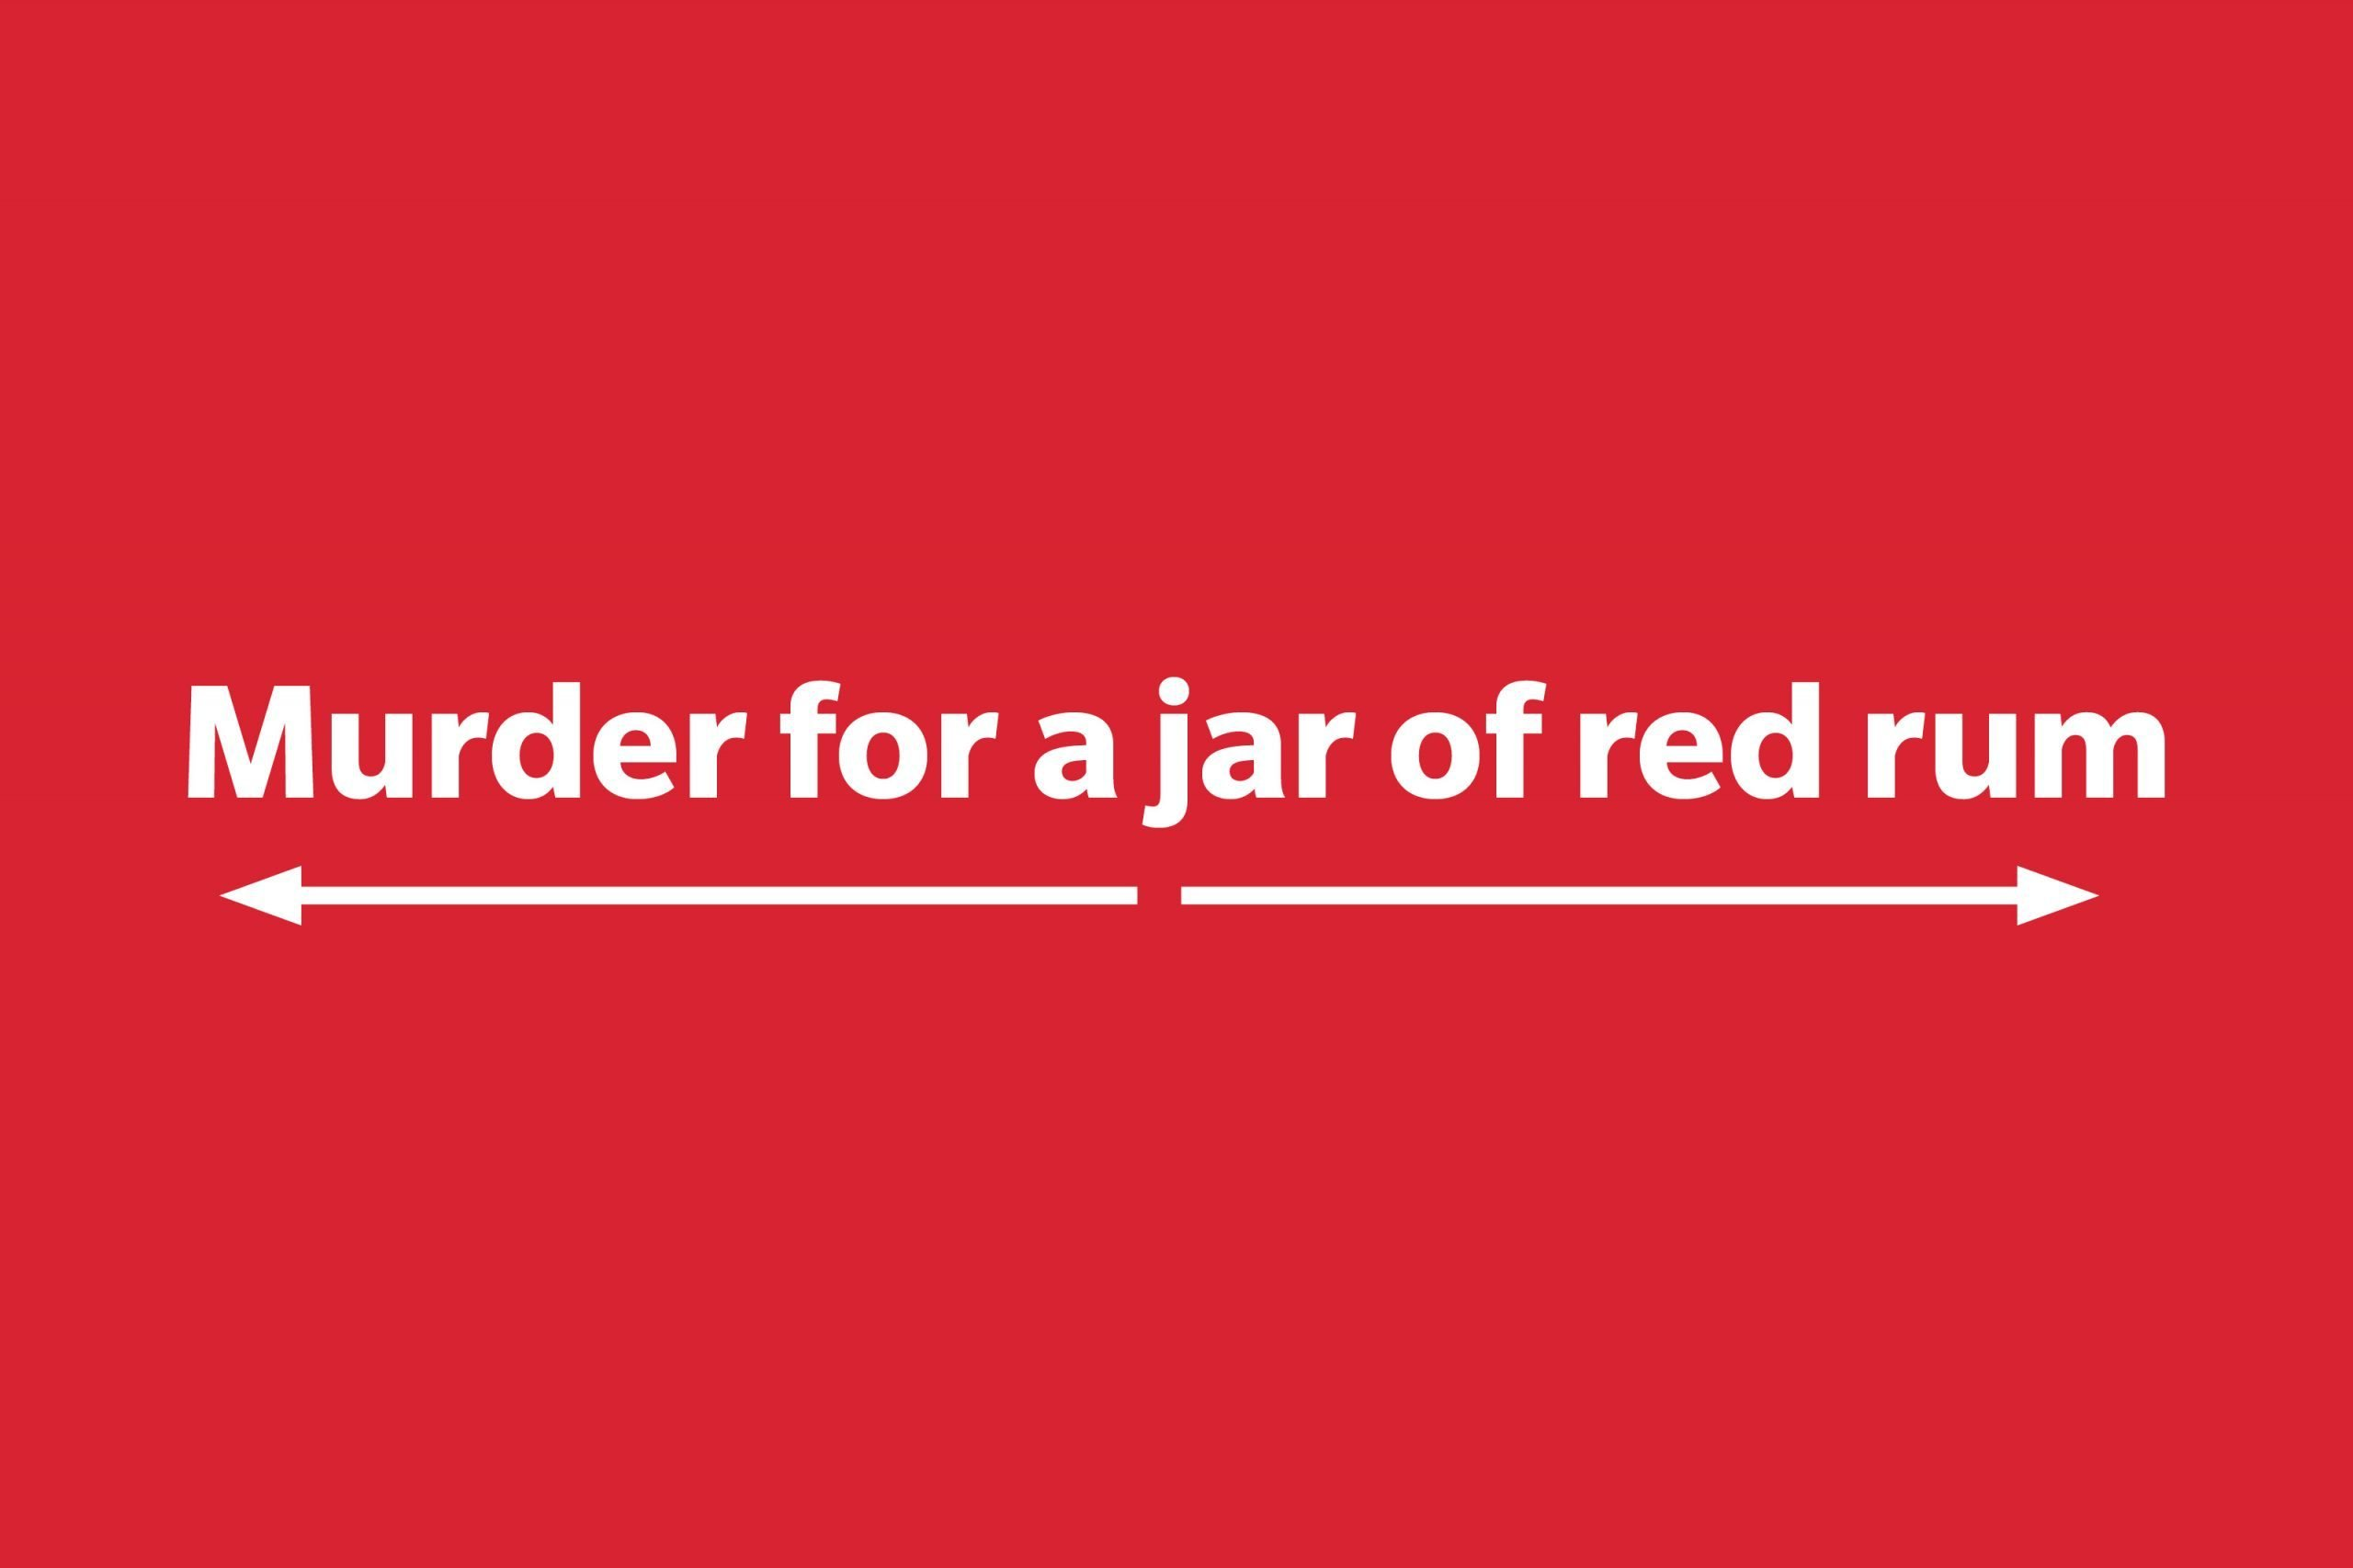 Murder for a jar of red rum